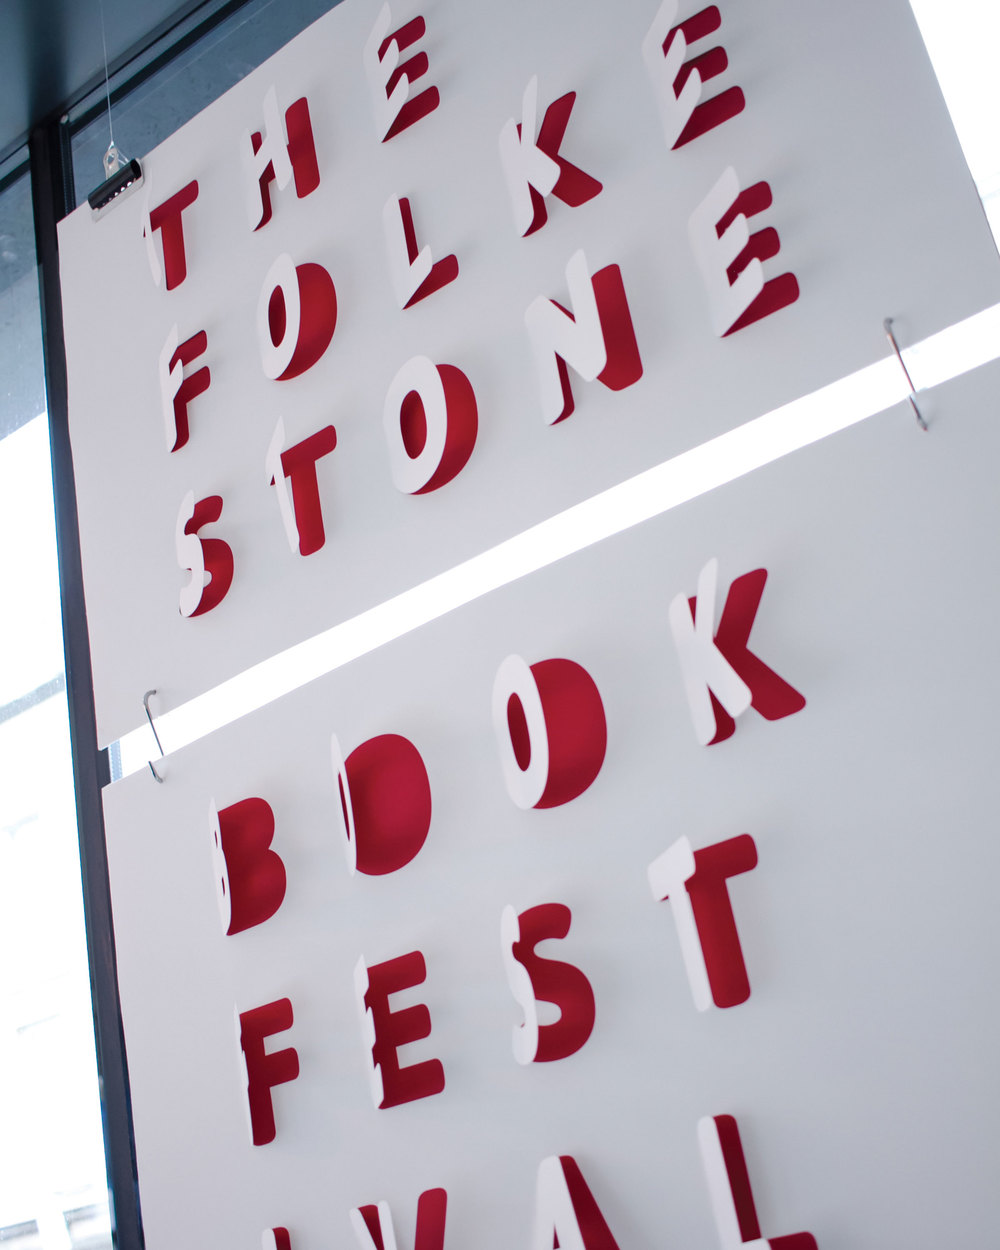 The book festival poster, opening like page in a book. Photography www.bernadettebaksa.com